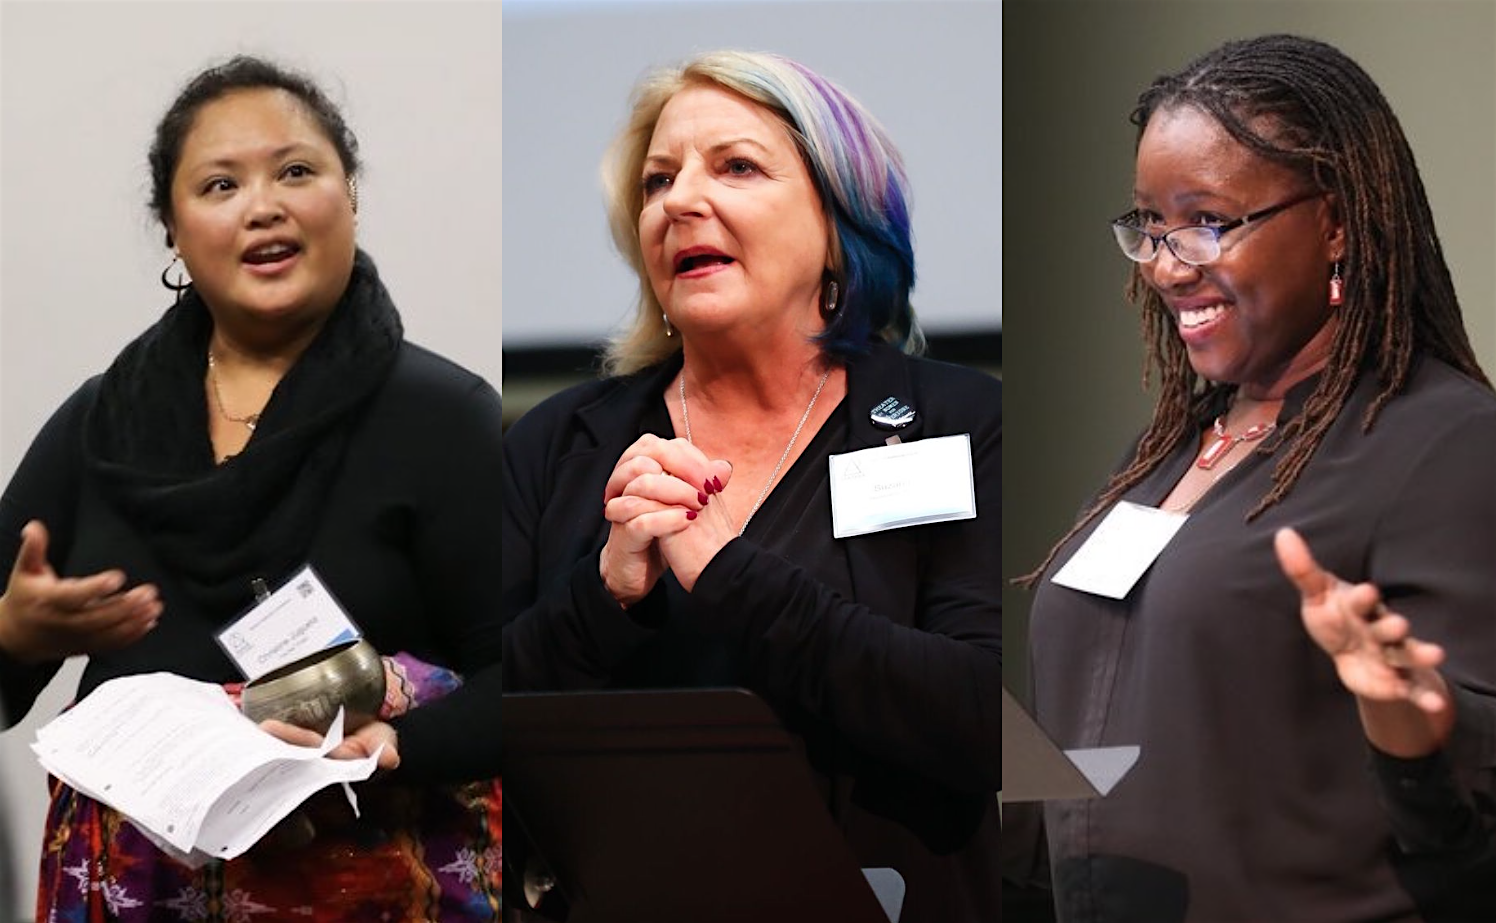 Speakers at Statera's 2018 conference: Christine Jugueta, Suzan Fete, and Nataki Garrett. Photos by Malloree Delayne Hill.